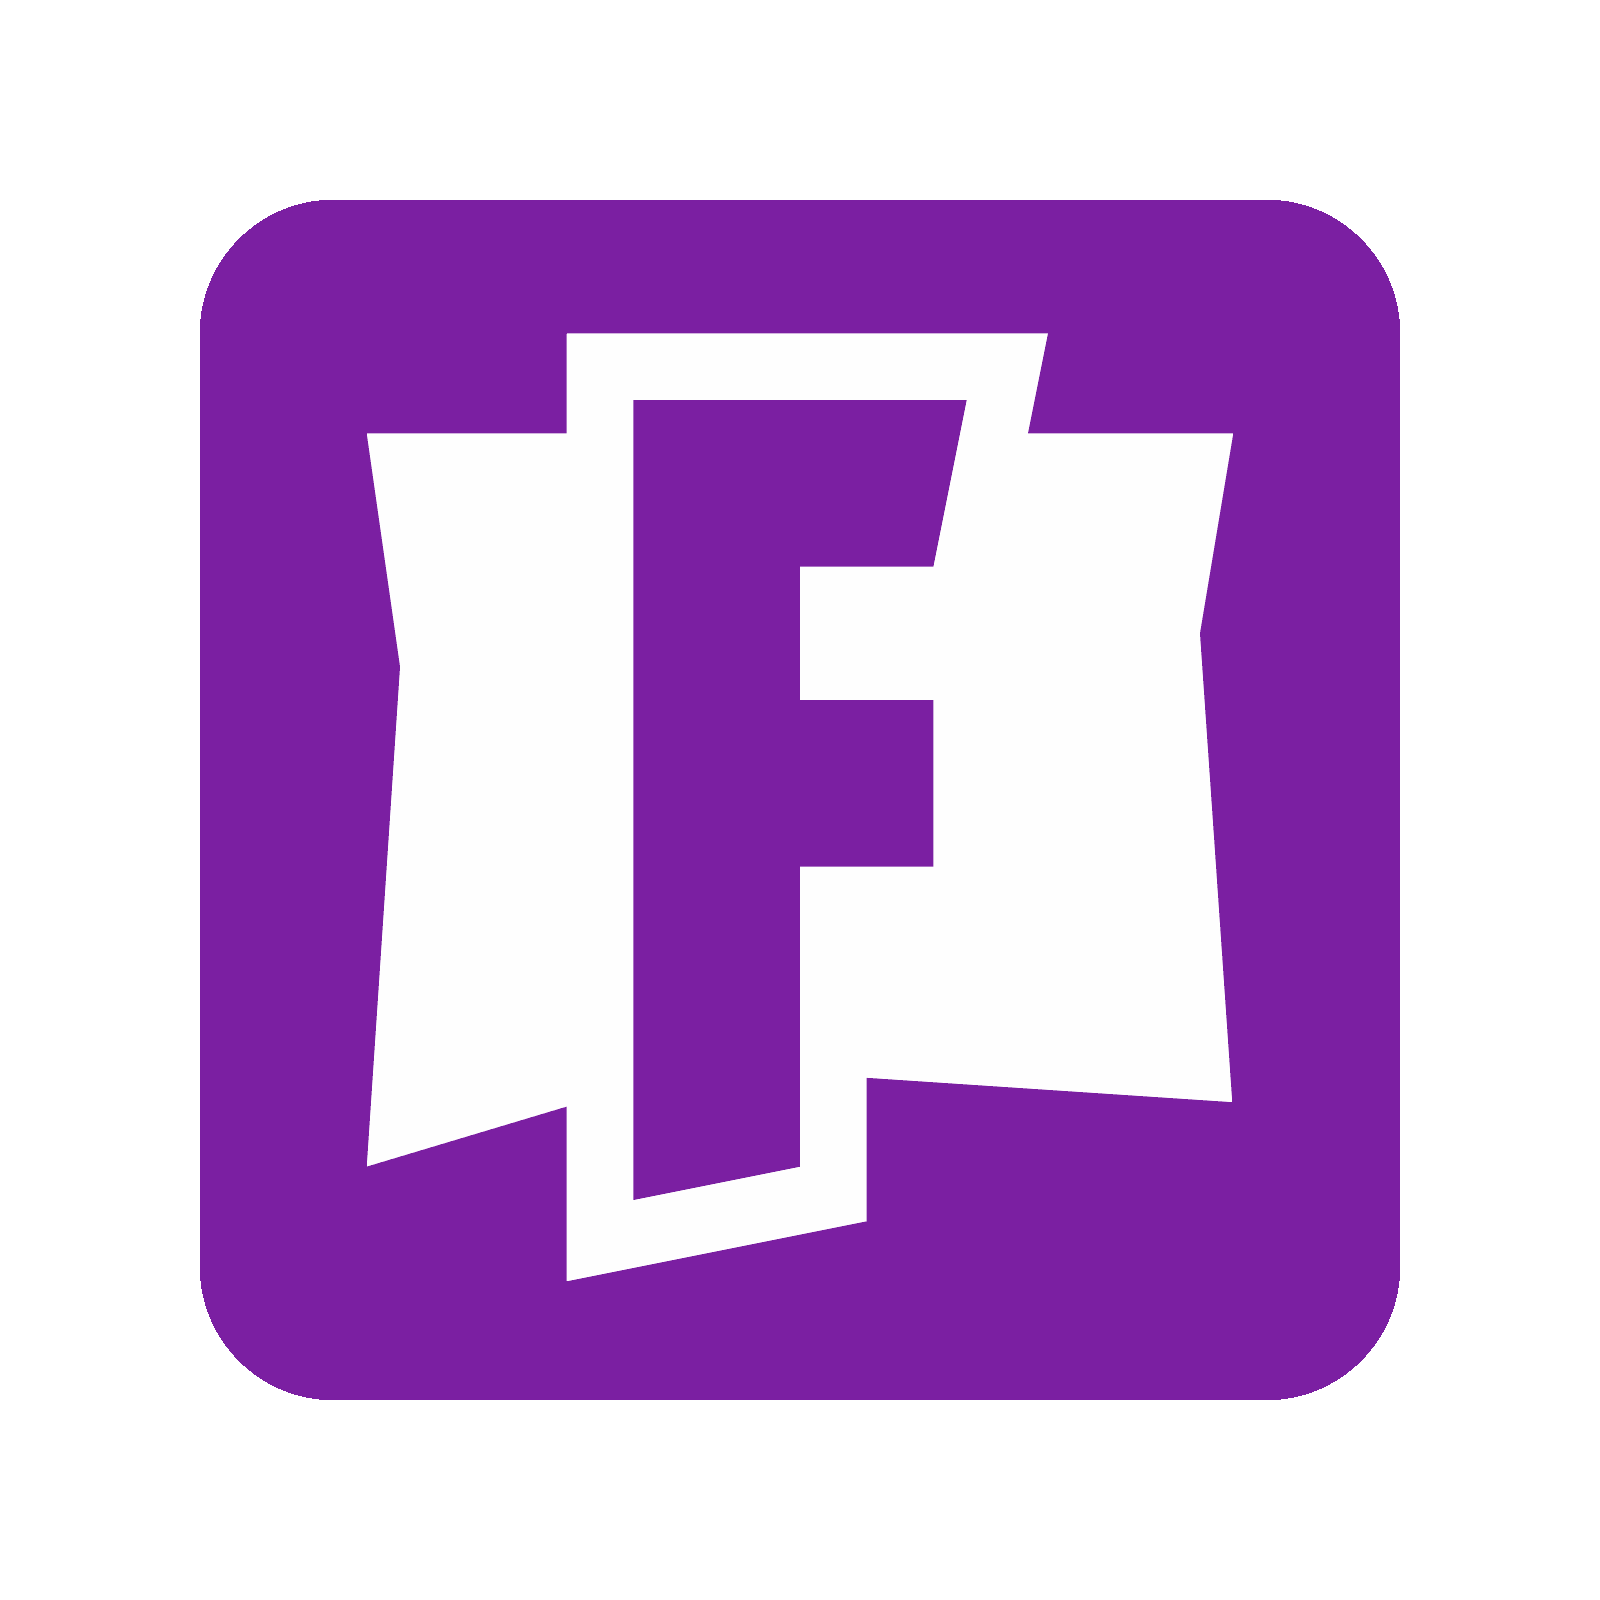 Free download png. Fortnite icon and vector